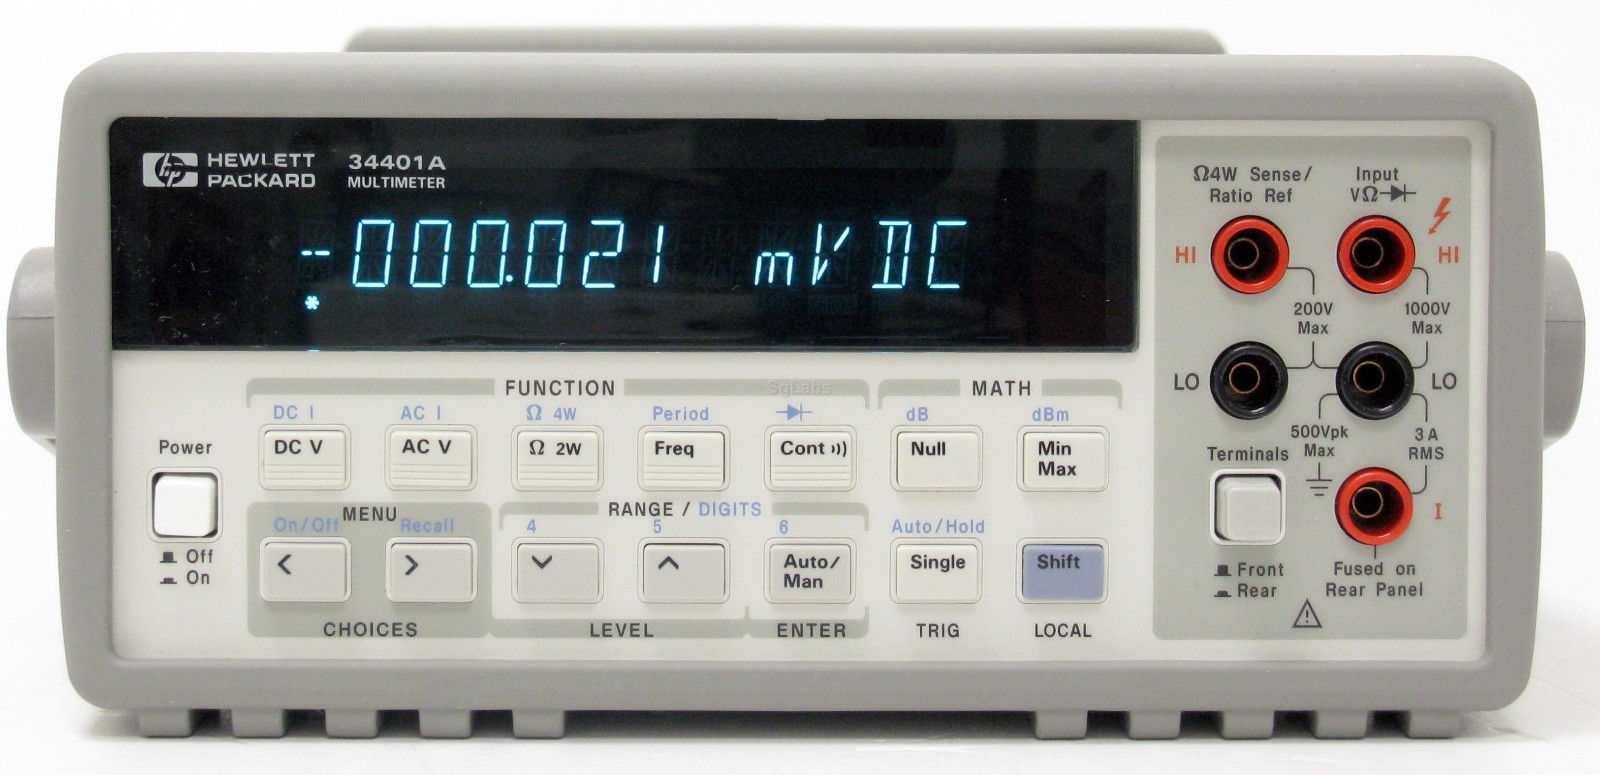 The HP 34401A Bench multimeter